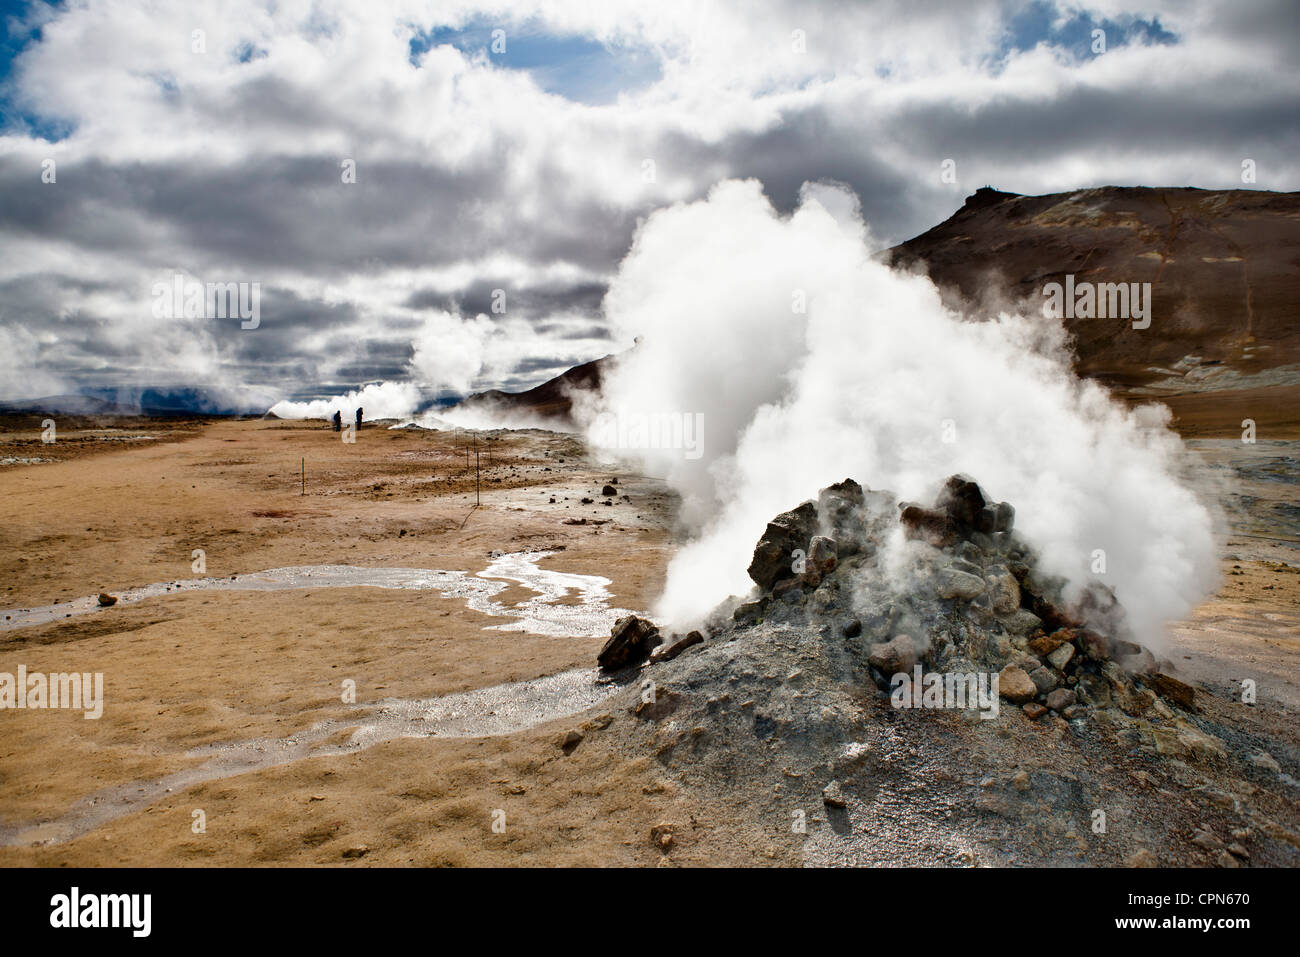 Iceland, Namafjall, fumarole releasing steam and sulfur gas - Stock Image